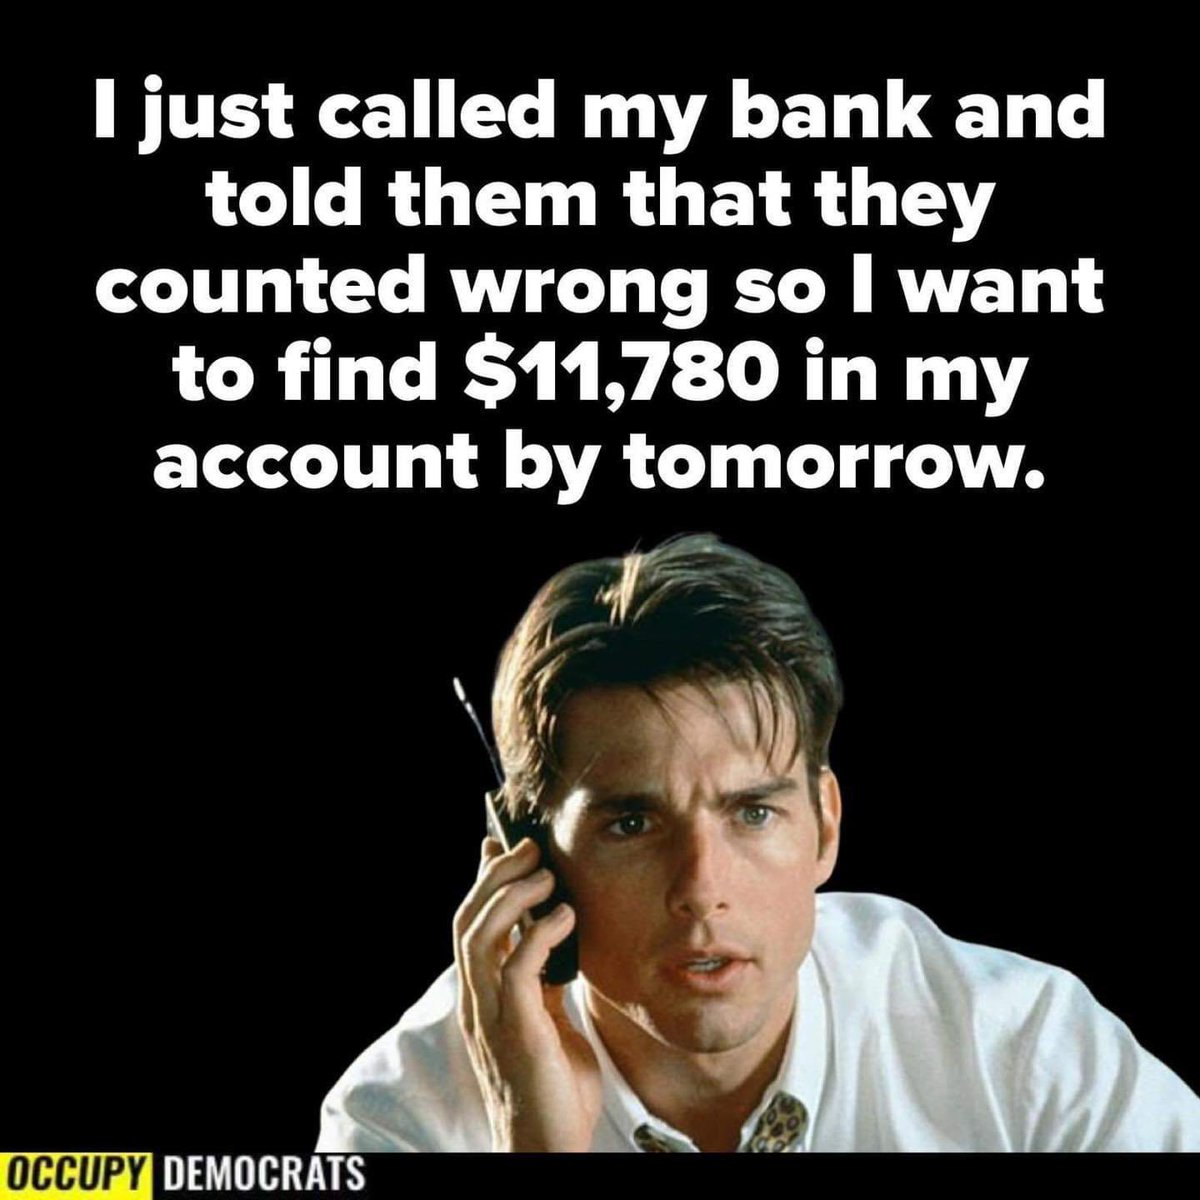 @J66534337 @SecPompeo I just called my bank and told them they counted wrong, so I want to find #11780Dollars in my bank account by tomorrow. #TrumpSeriesFinale